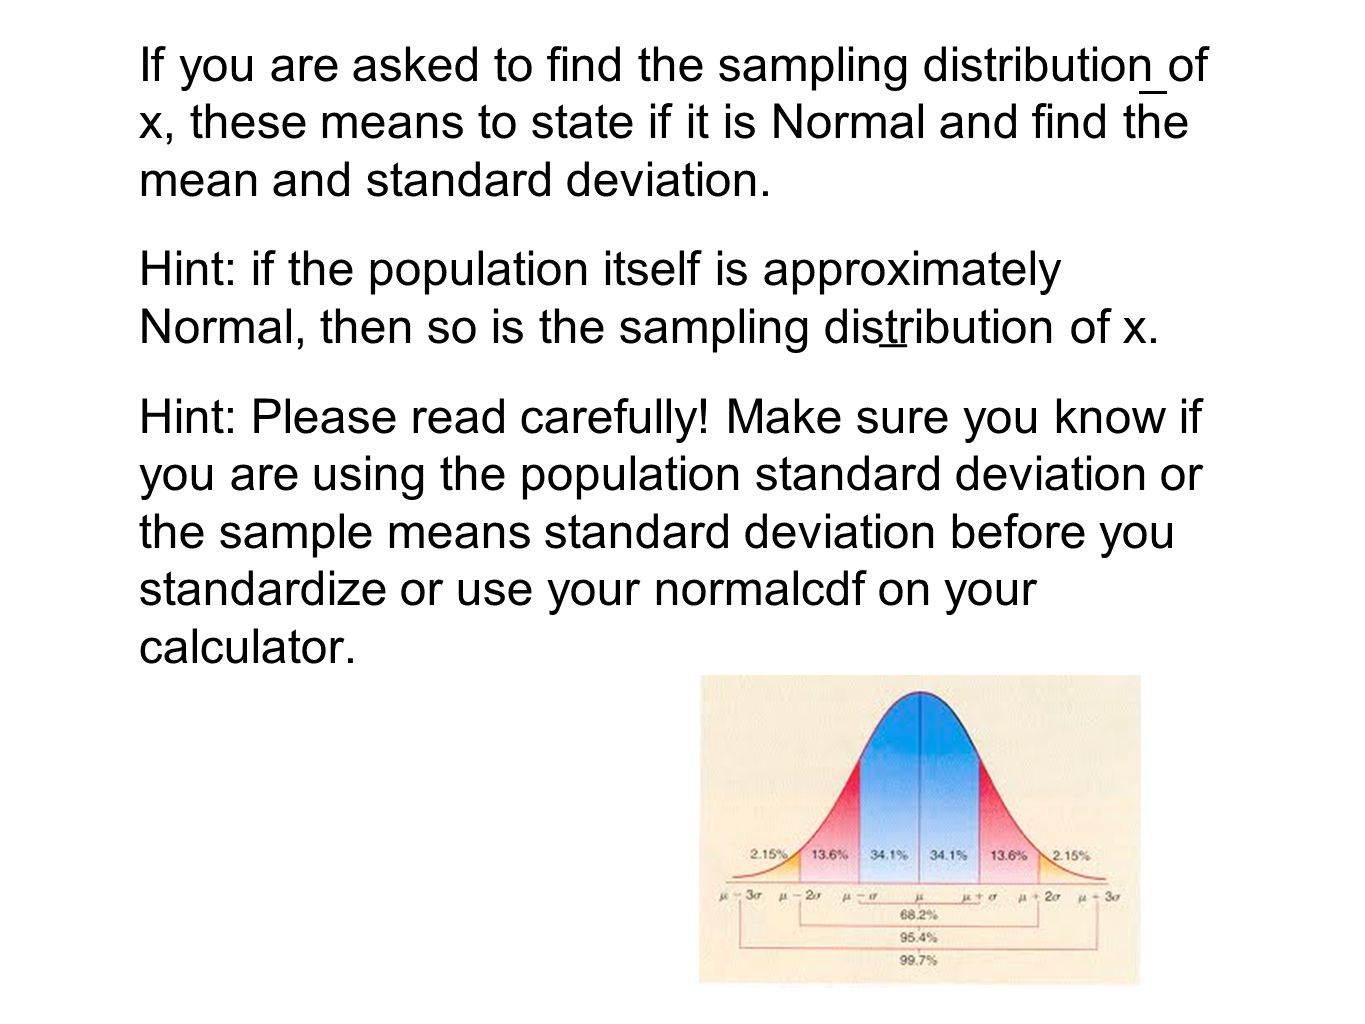 If You Are Asked To Find The Sampling Distribution Of X, These Means To  State